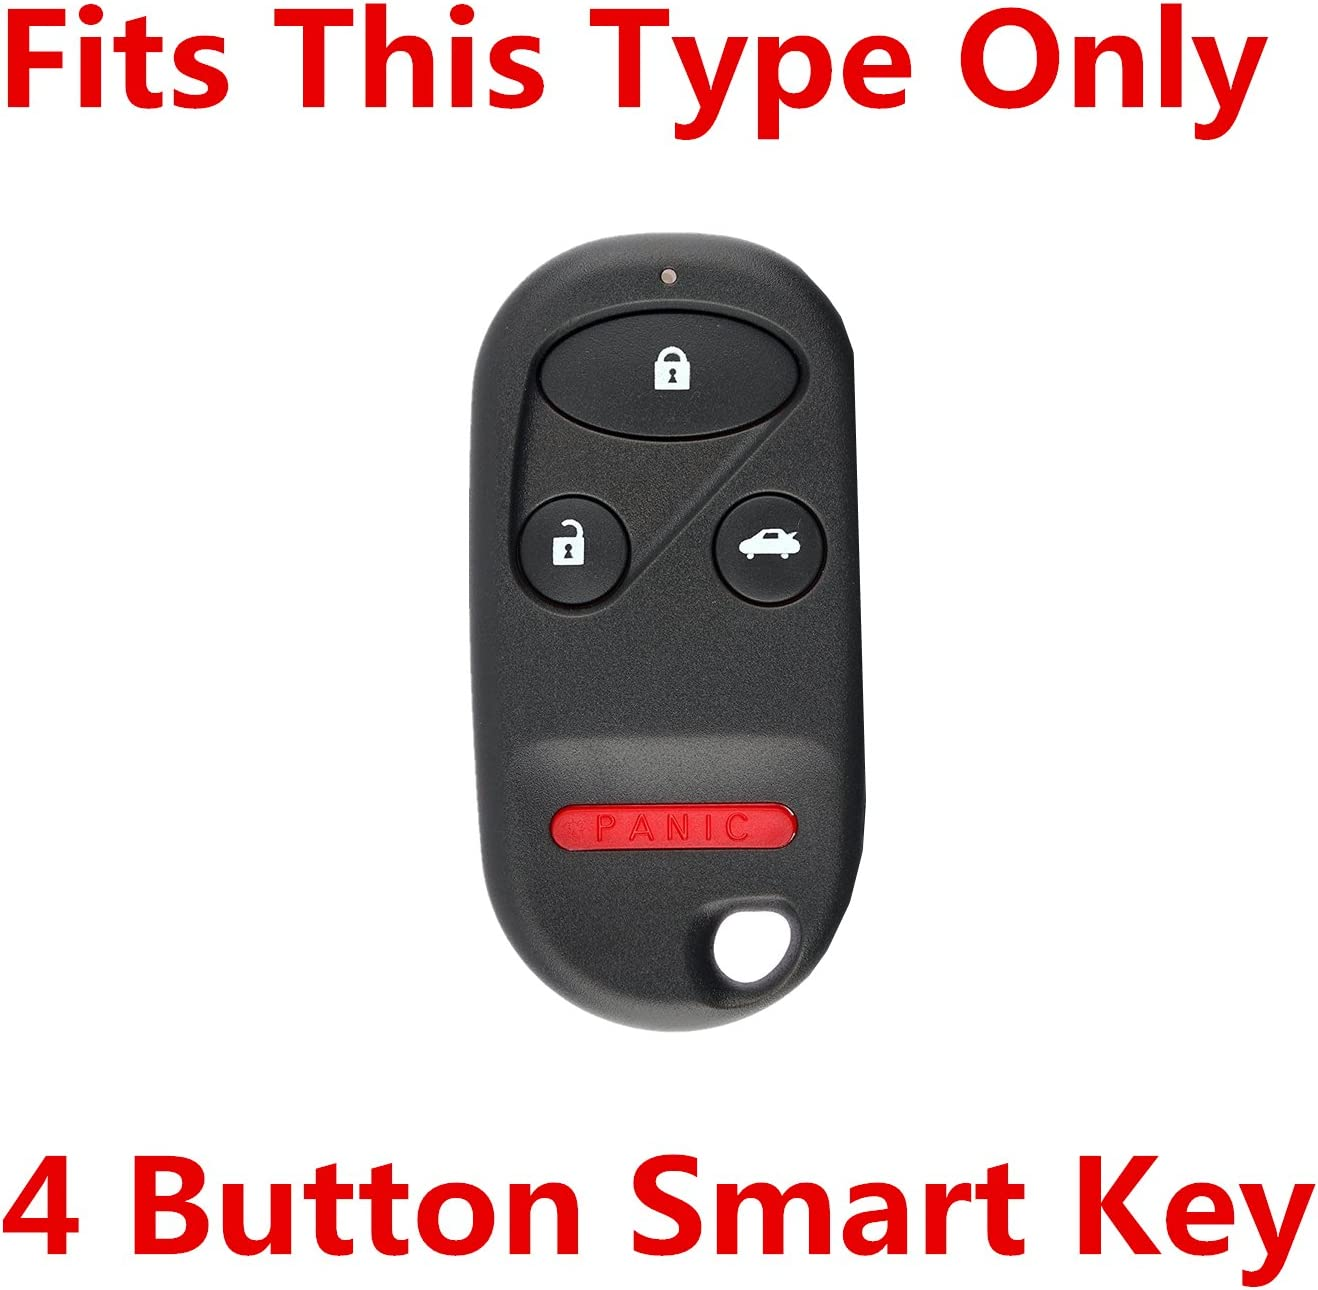 Rpkey Silicone Keyless Entry Remote Control Key Fob Cover Case protector For Acura TL Honda Accord CR-V Civic Insight Odyssey Pilot Prelude S2000 KOBUTAH2T A269ZUA101 A269ZUA108 CWT72147KA Violet